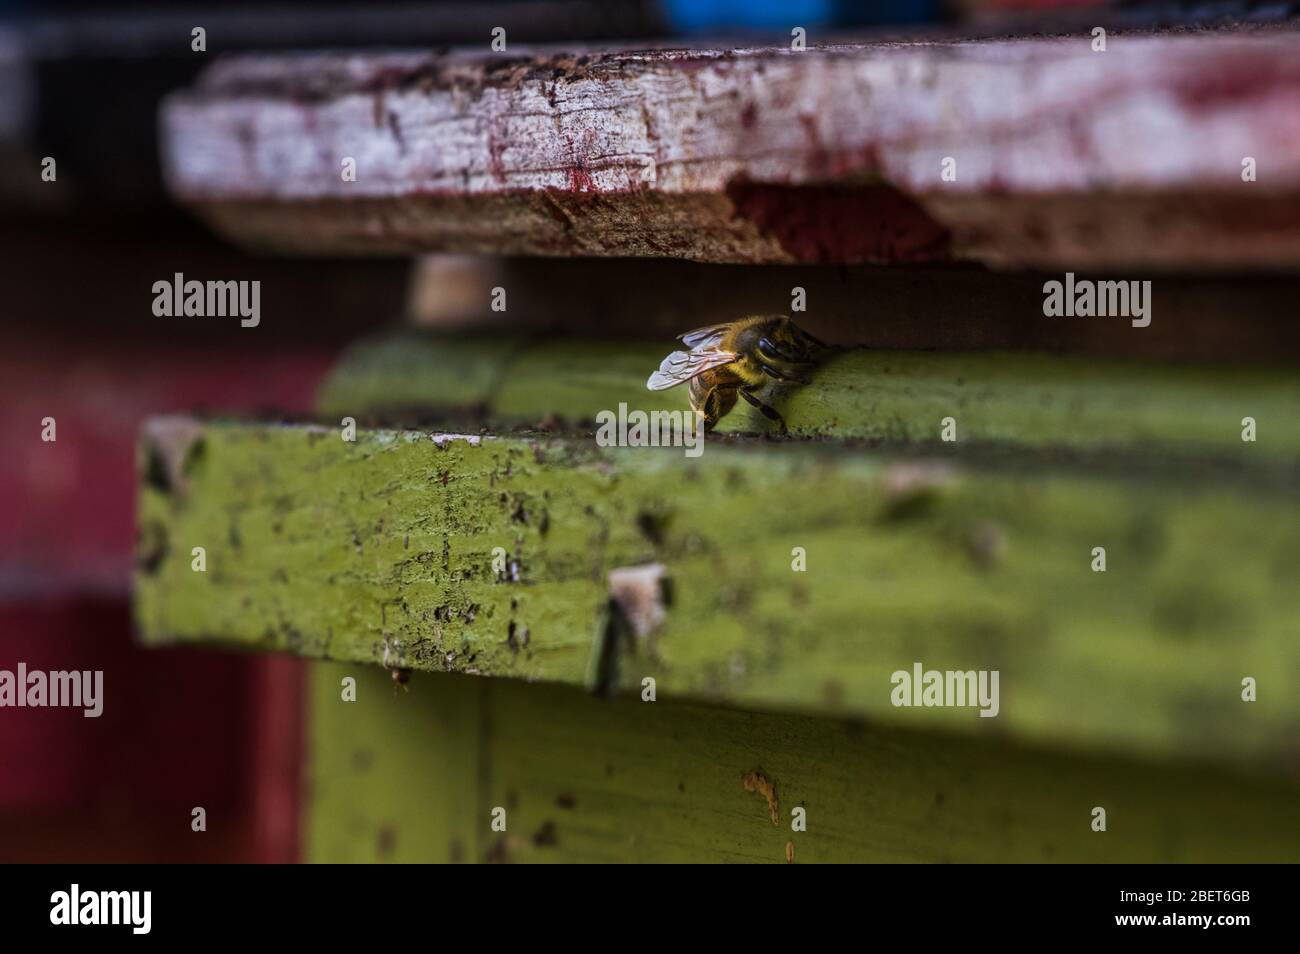 single Carniolan honey bee sitting at the entrance of the bee hive Stock Photo